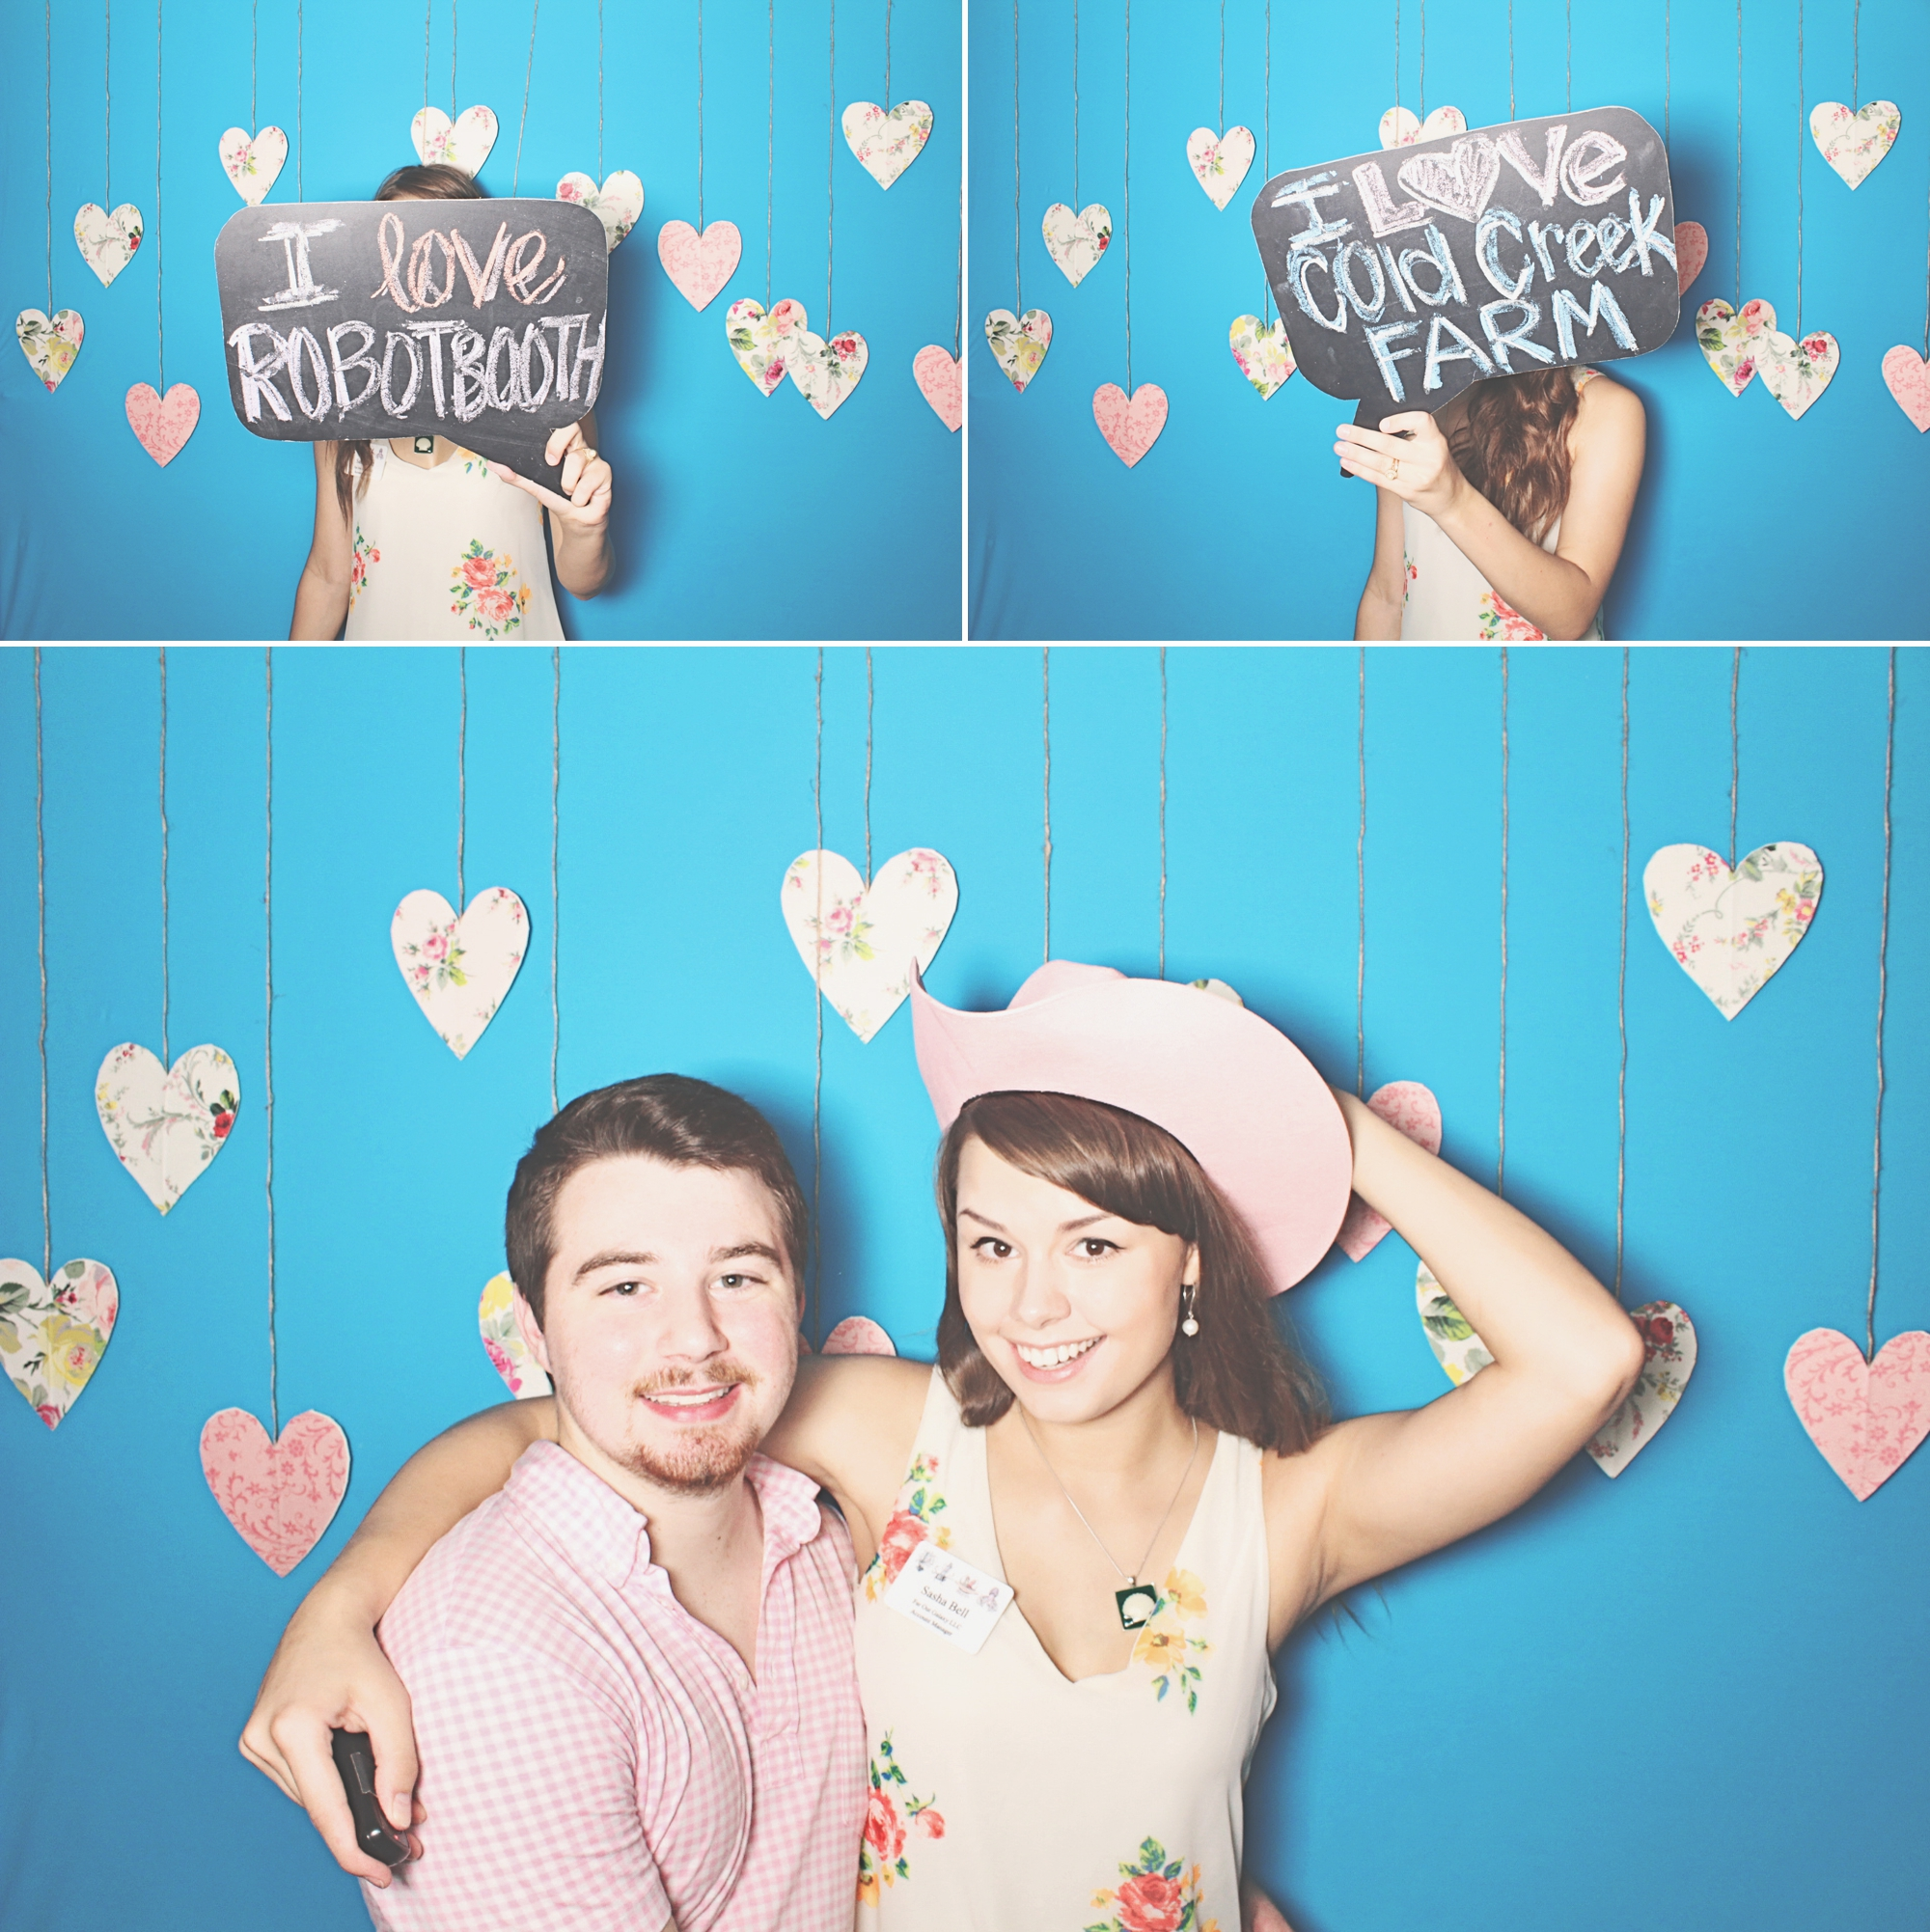 Dawsonville Wedding Venue - Cold Creek Farm - RobotBooth PhotoBooth 1